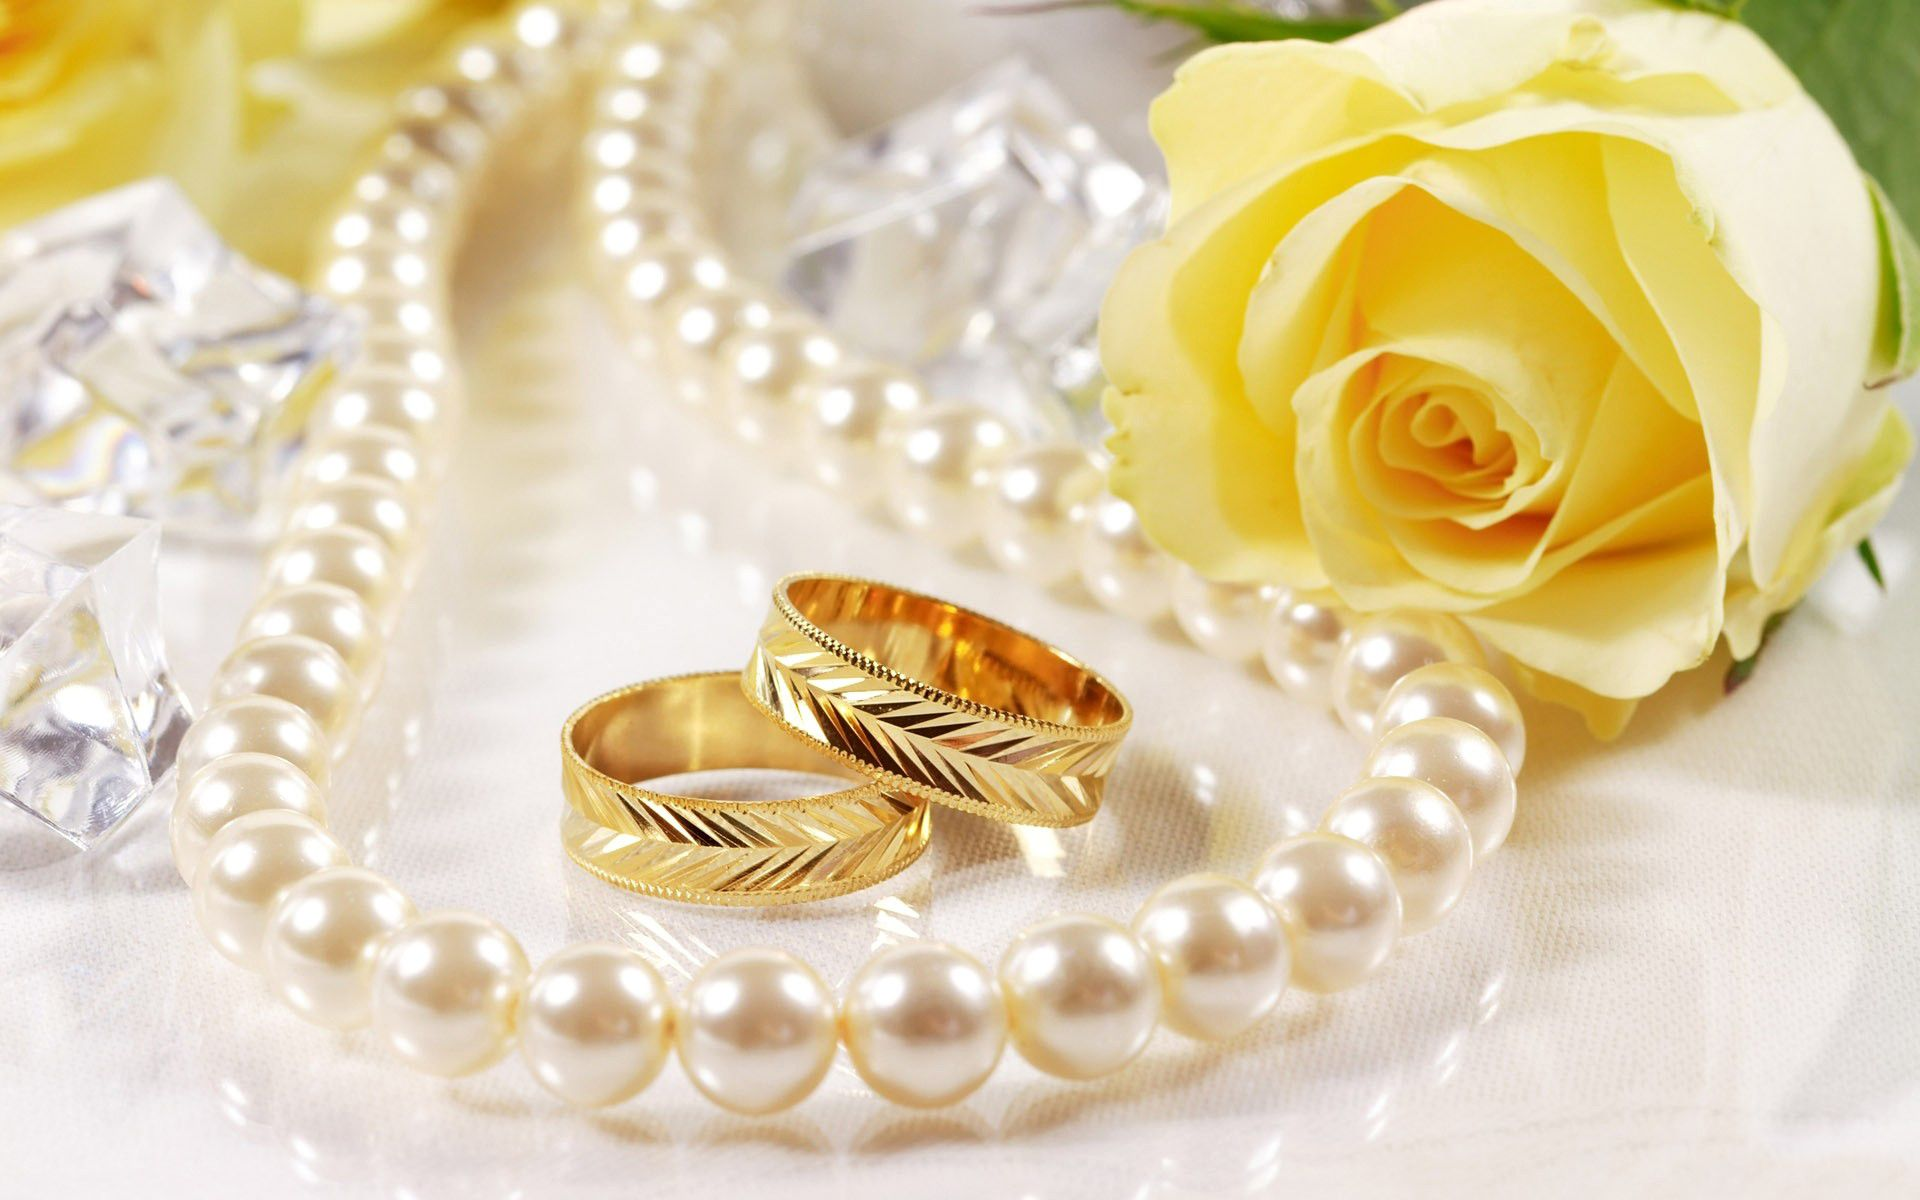 Yellow Rose Gold Ring Pearl Necklace Diamond Wide Tablet HD Wallpaper